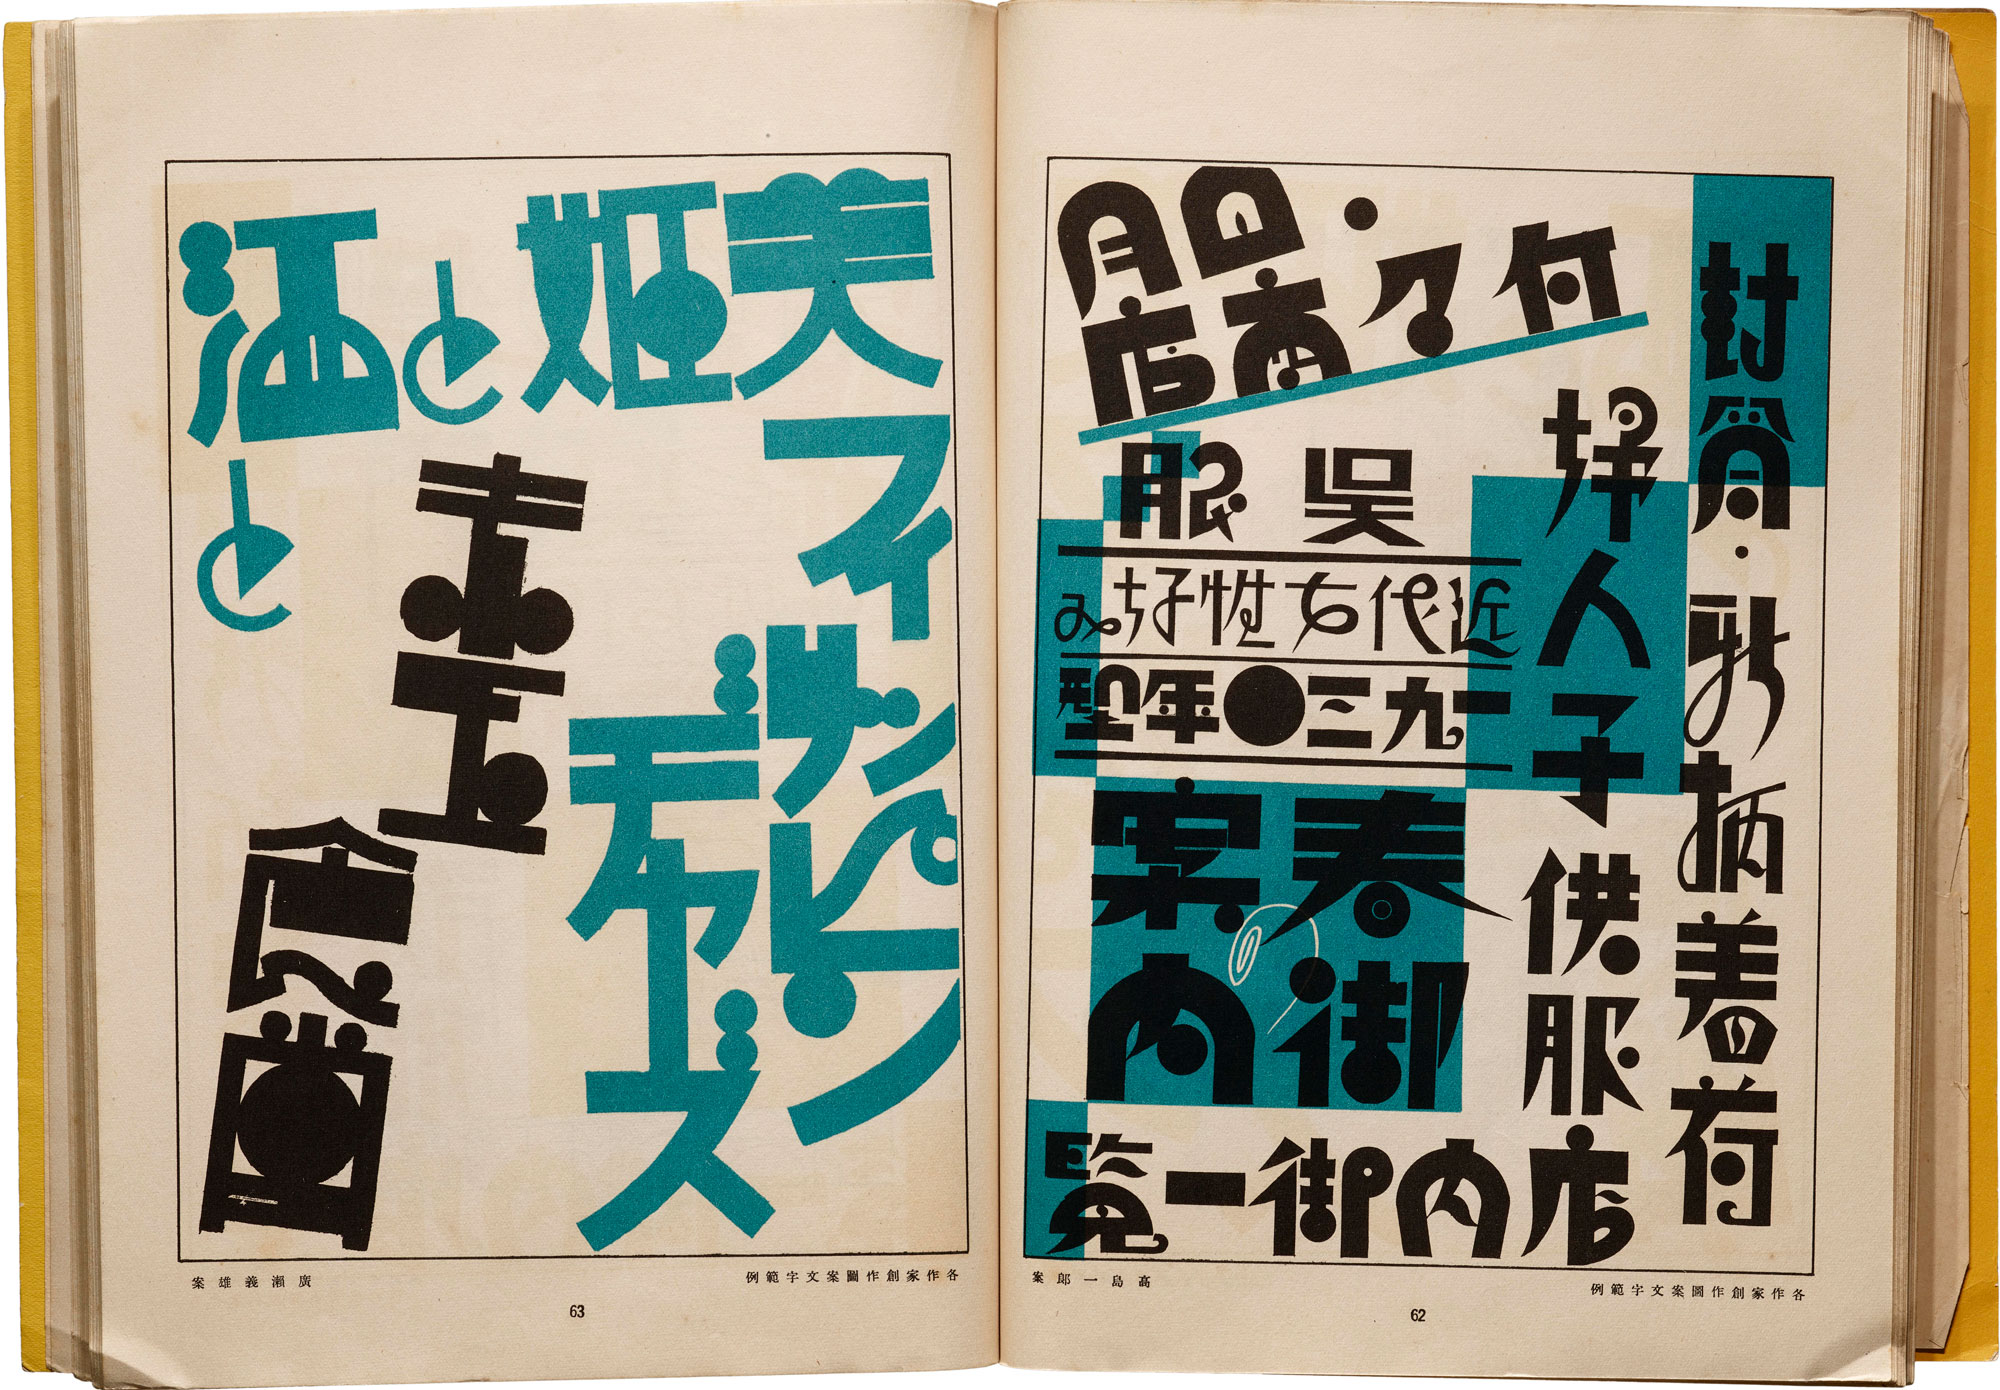 Japanese Typography, Lettering, and Commercial Art in the Early Twentieth Century